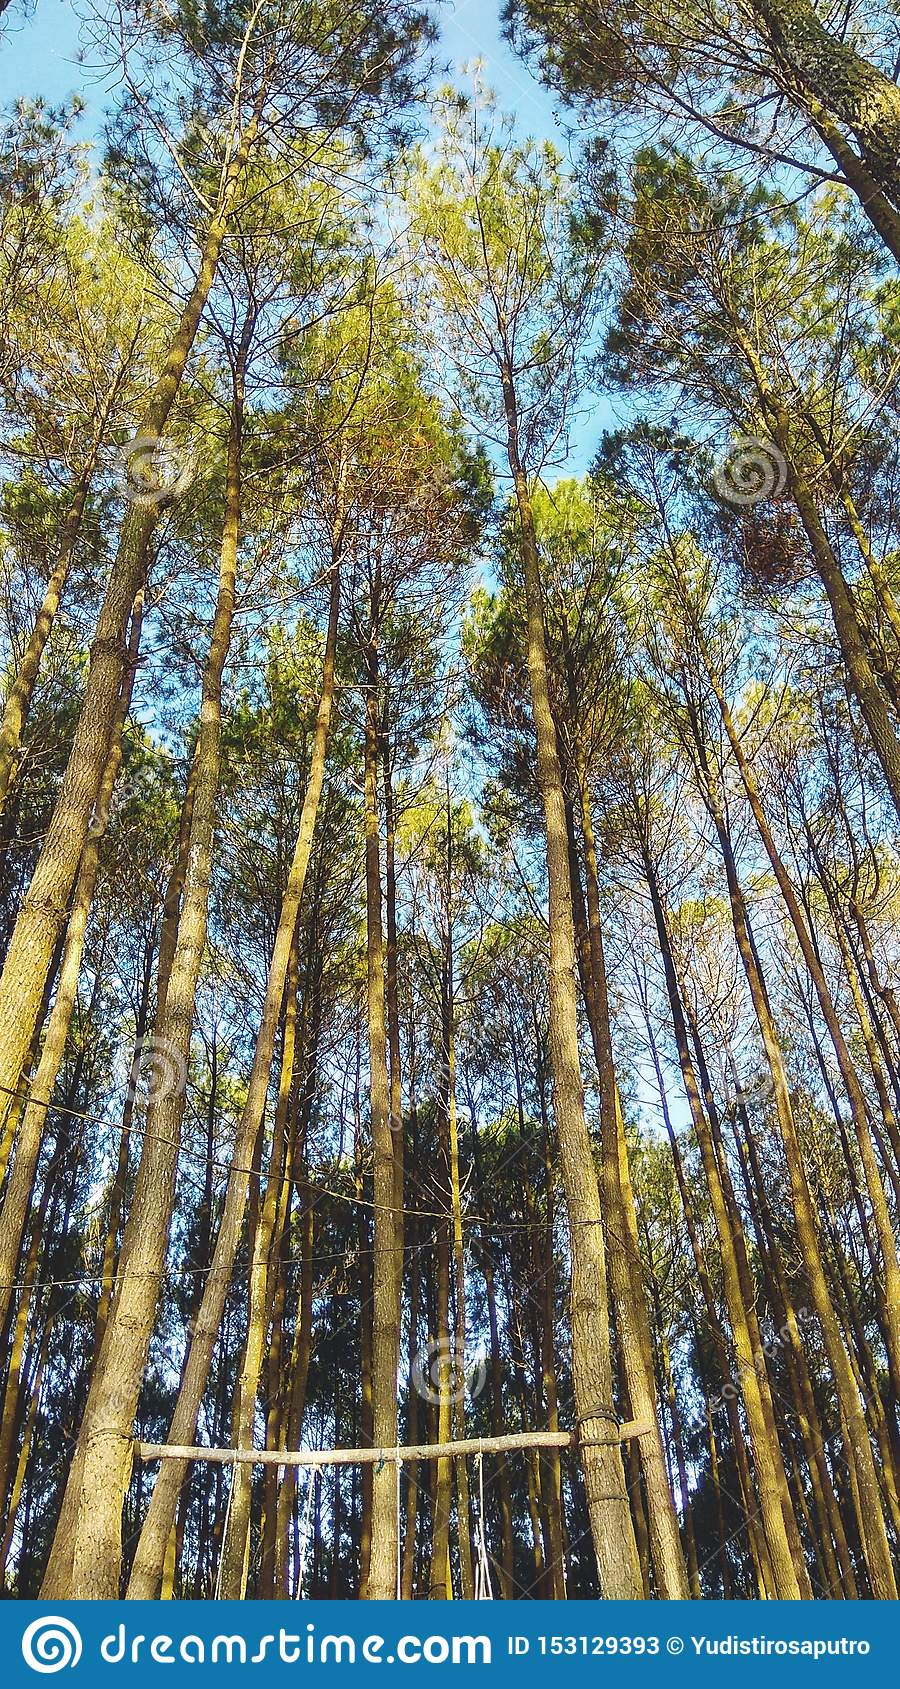 Beautiful Scenery In The Indonesian Pine Forest For Wallpaper Or Mobile Background Landscape Mode Stock Image Image Of Wallpaper Scenery 153129393